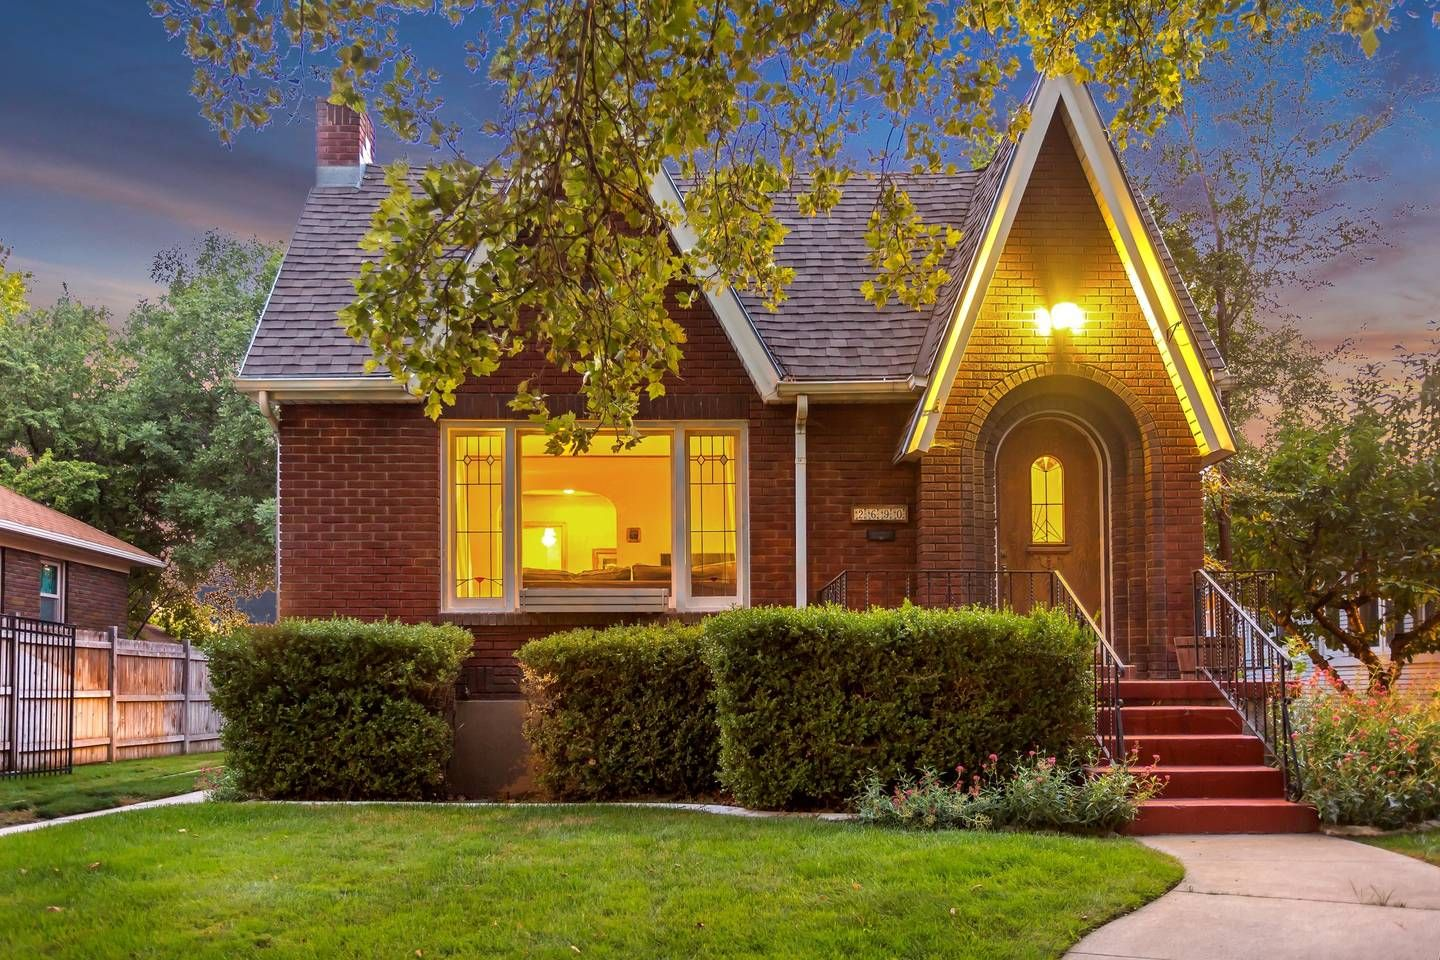 Cozy Sugarhouse Tudor Perfect Location Slc Houses For Rent In Salt Lake City Utah United States Vacation Home Renting A House House Styles